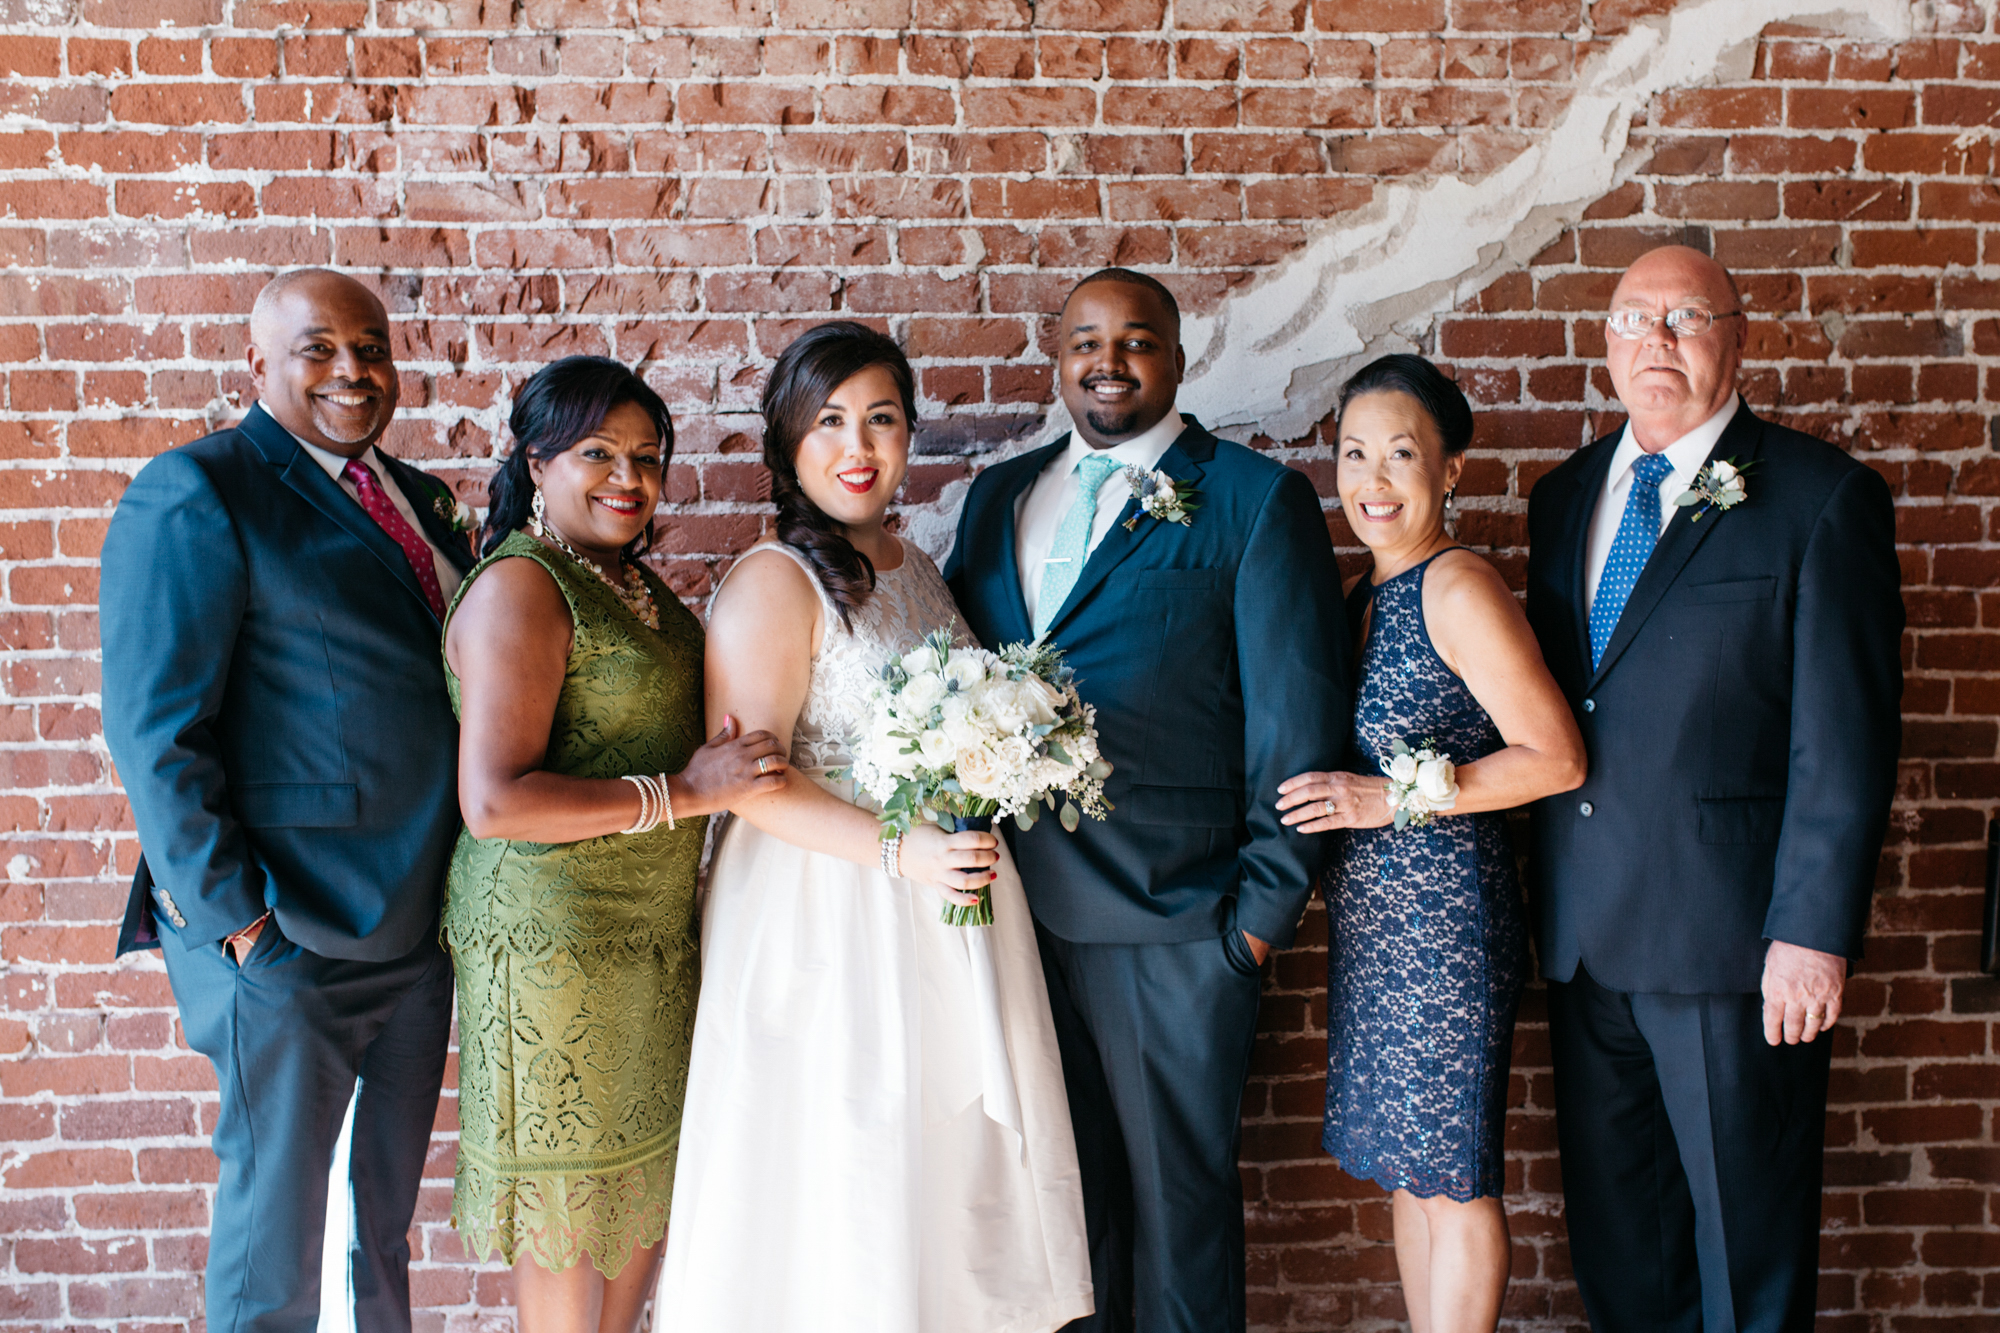 SamErica Studios - Los Angeles Wedding Photographer - The Loft on Pine-1-3.jpg